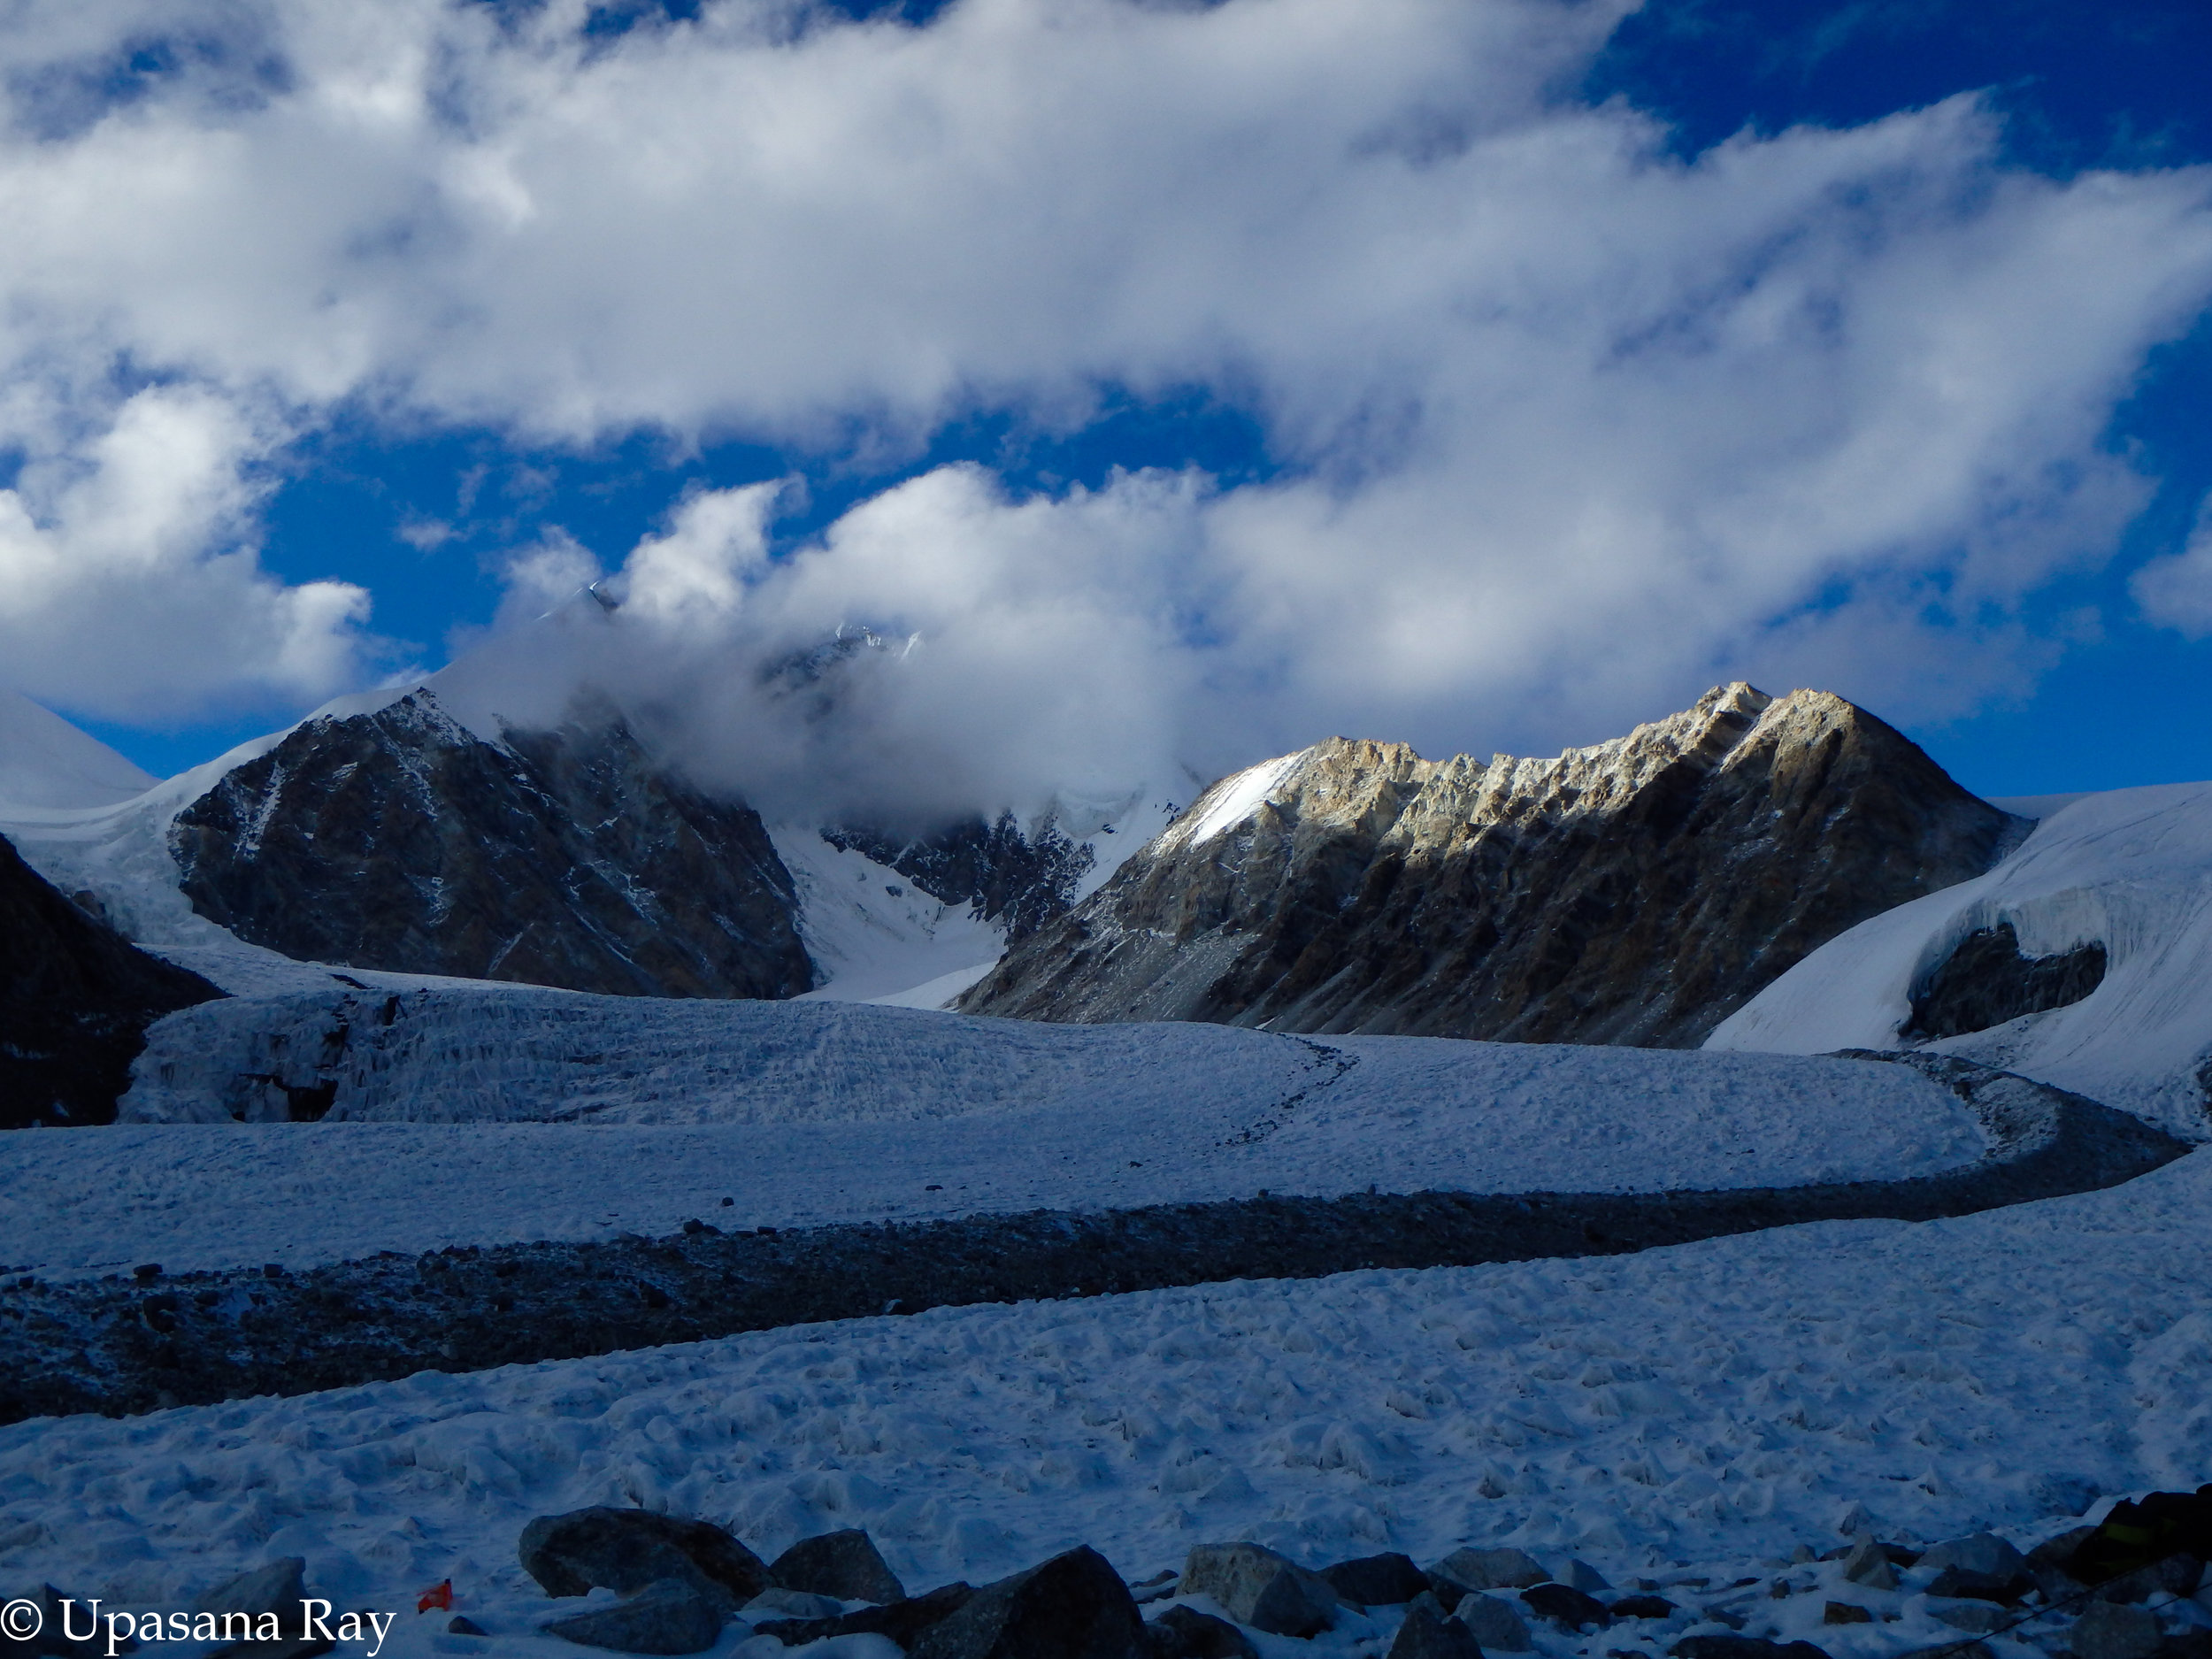 A view from Kalindi base camp